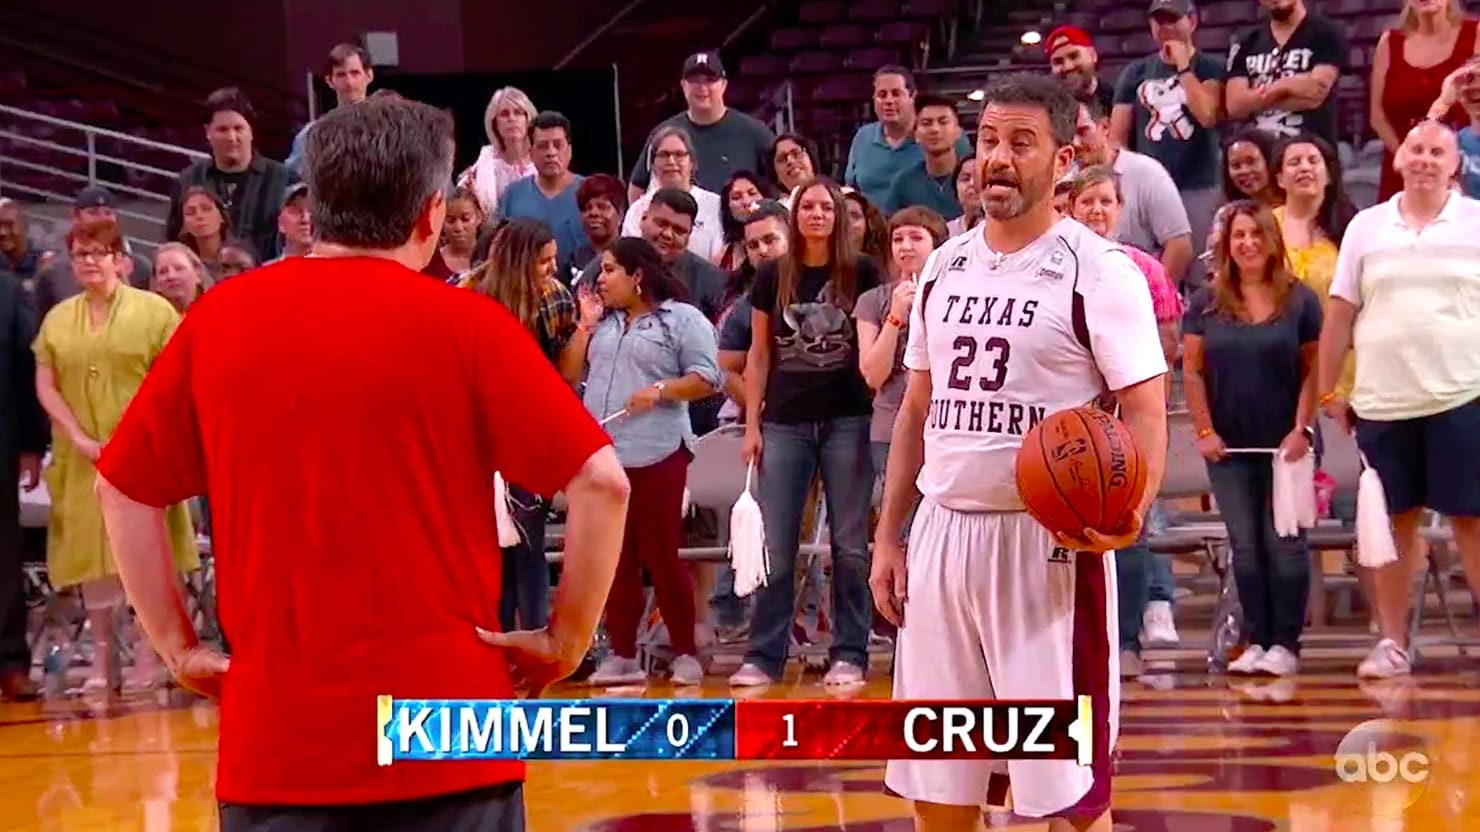 Jimmy Kimmel Taunts Ted Cruz Over Detained Immigrant Kids During Basketball Loss